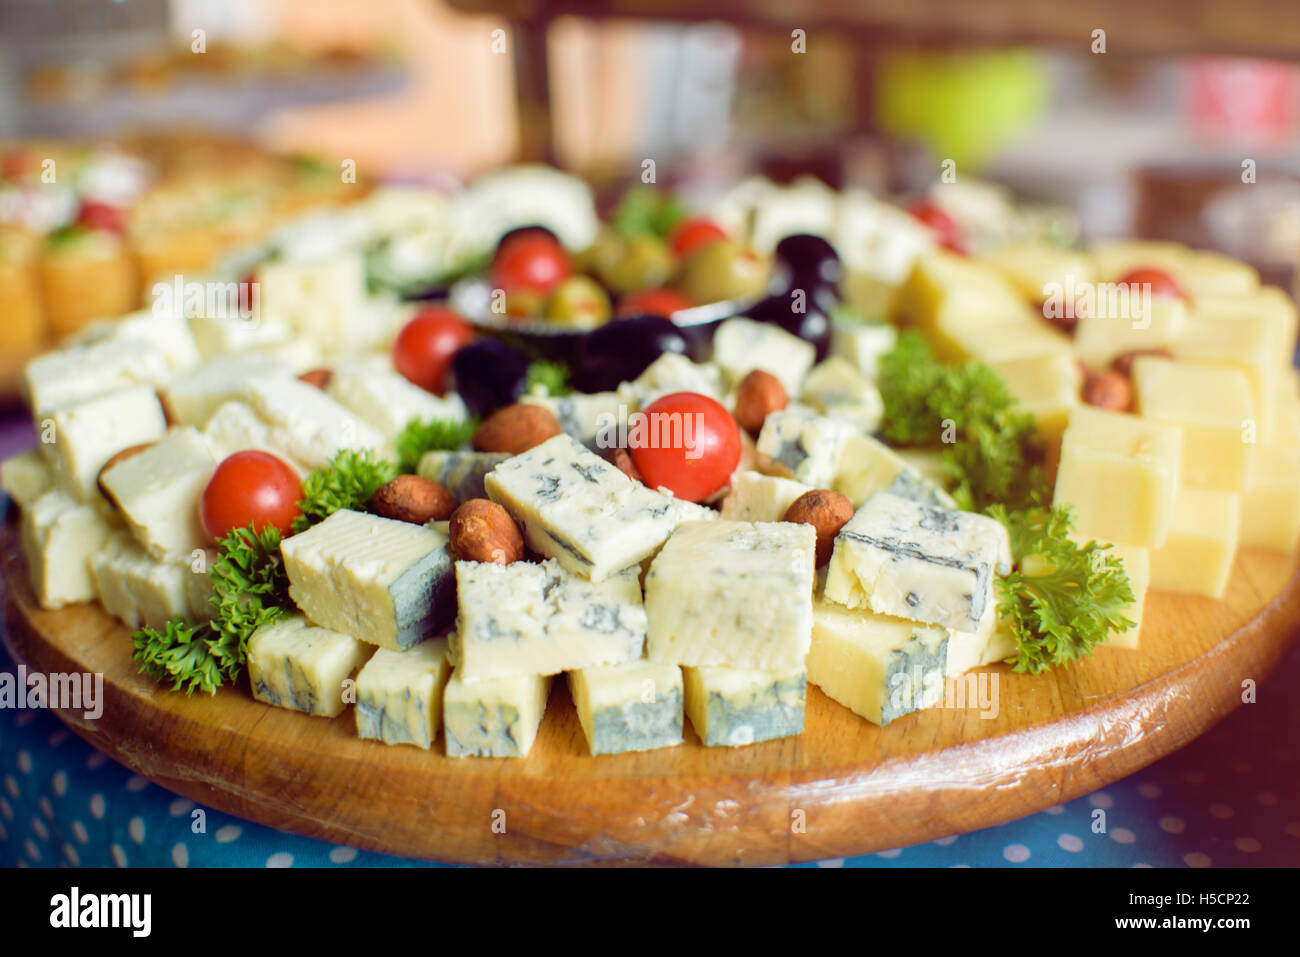 Blue cheese and catering food - Stock Image